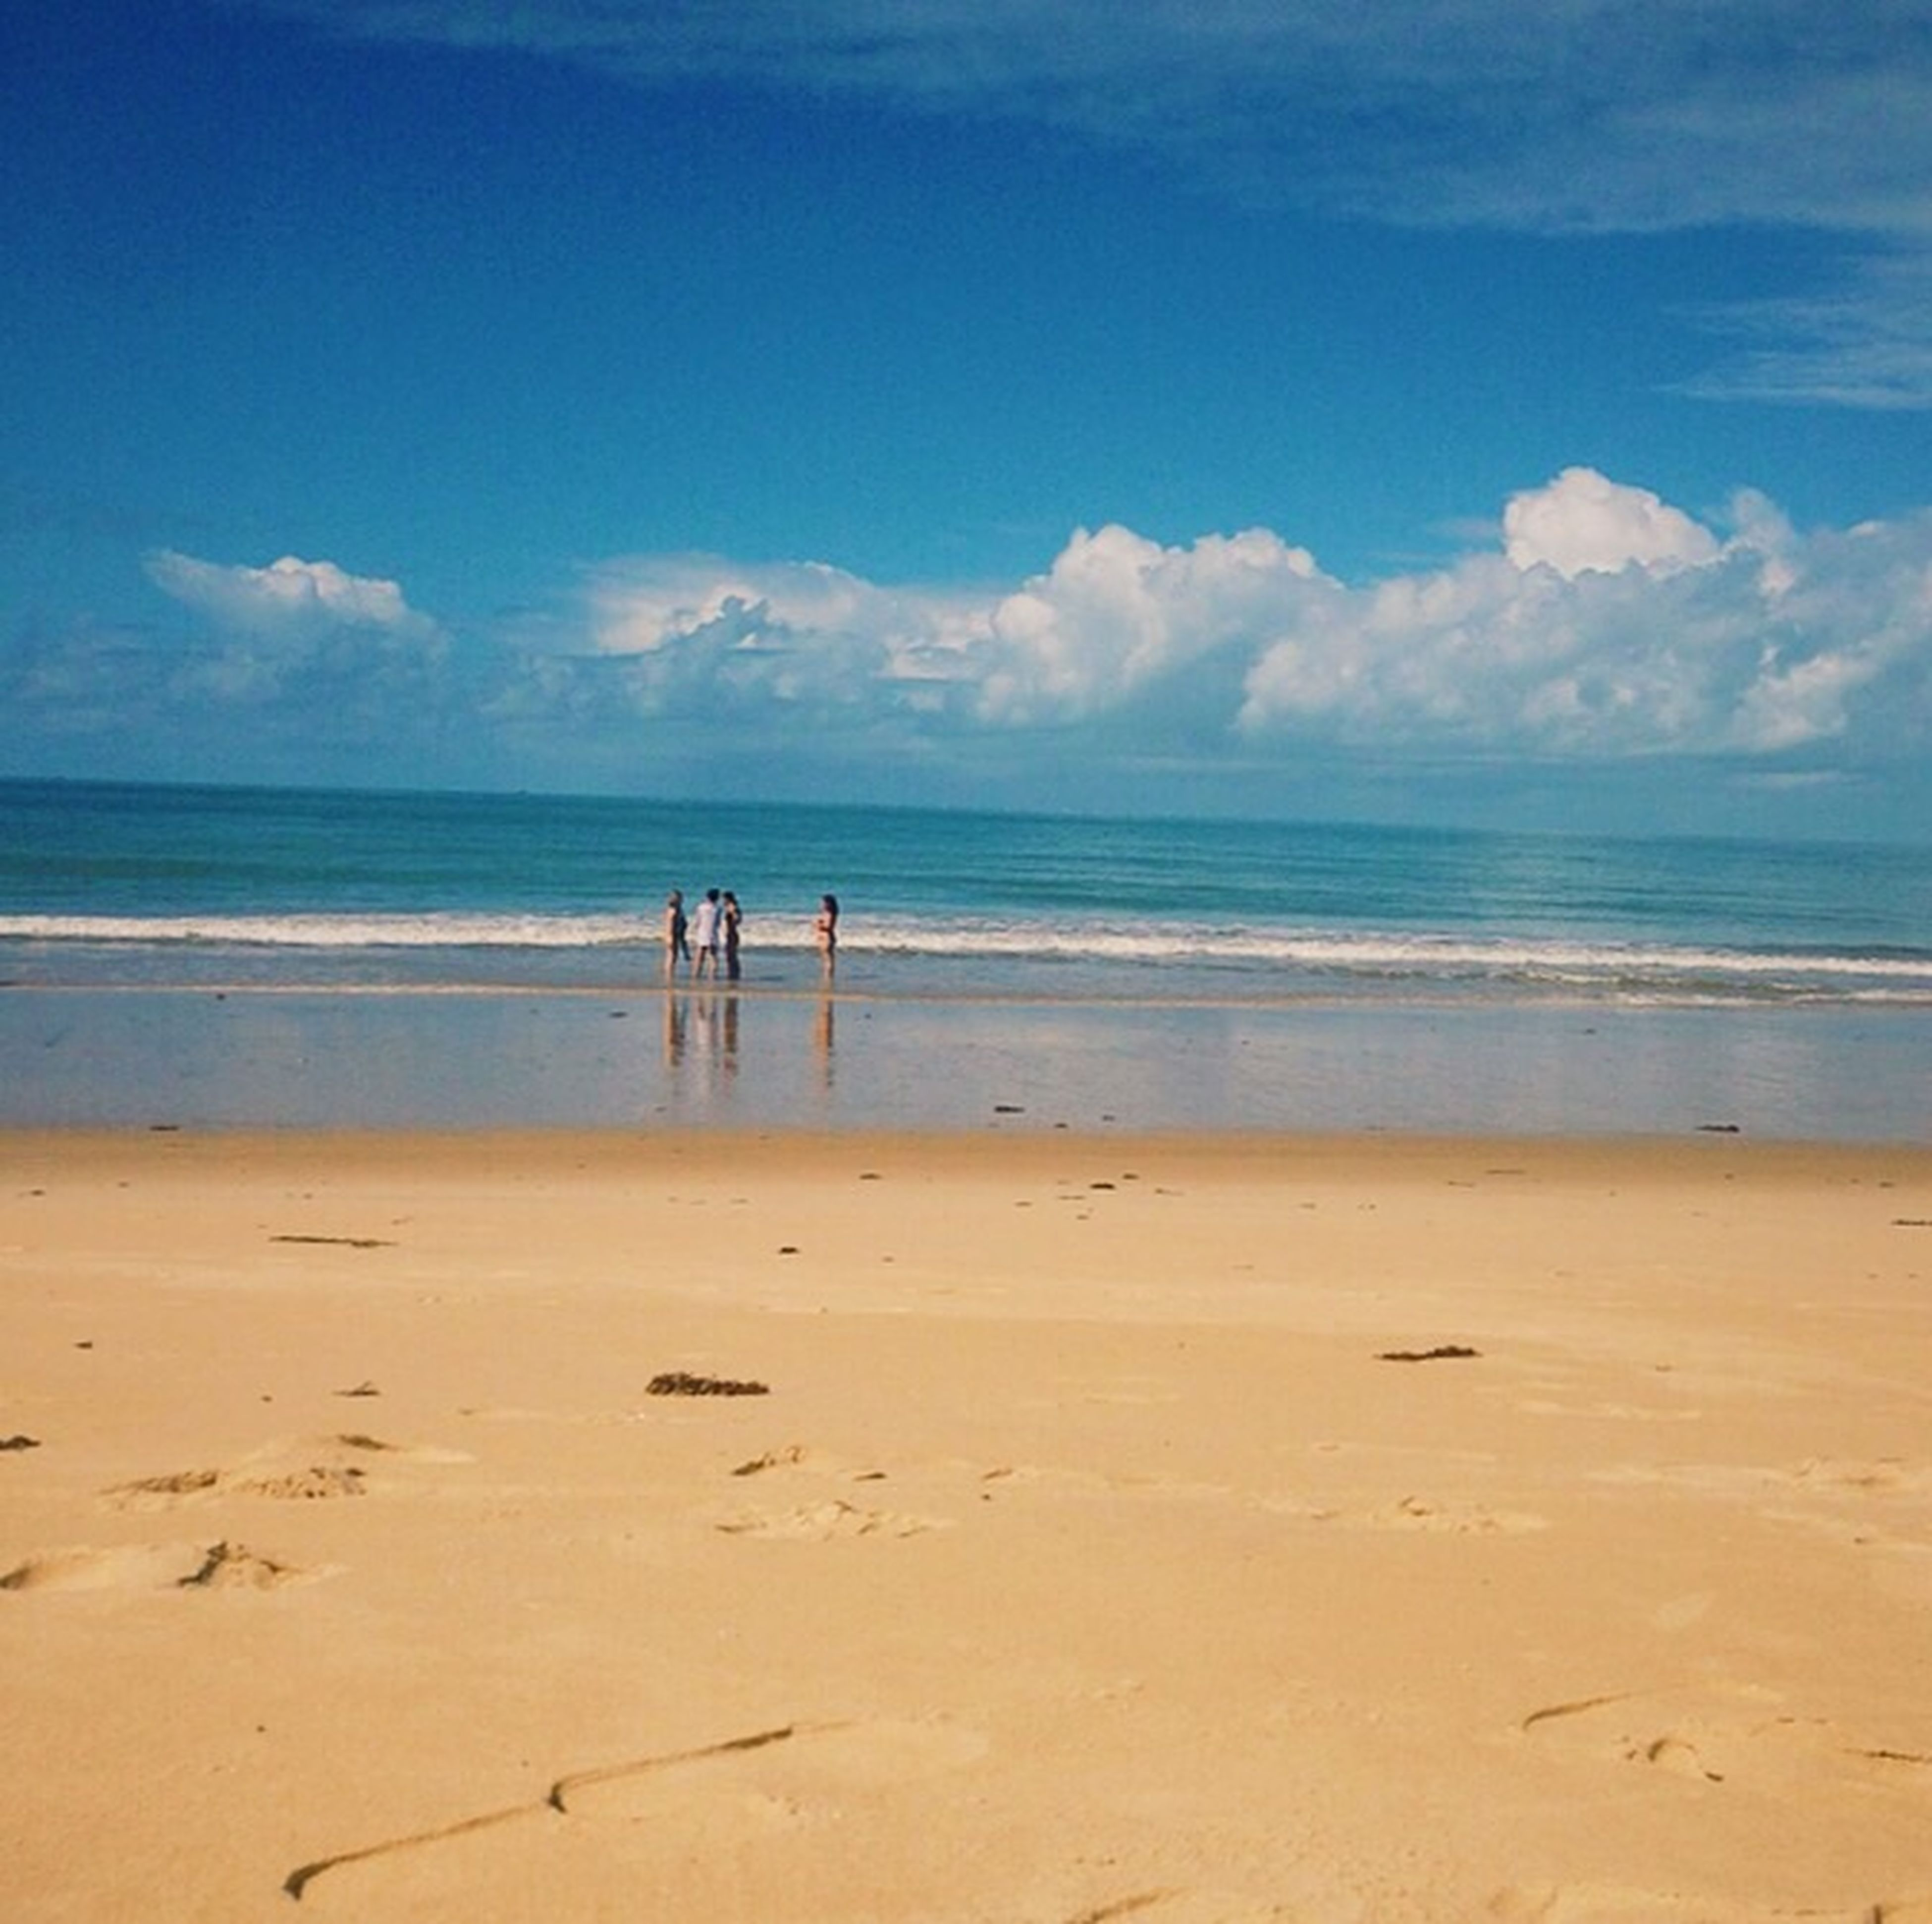 sea, beach, horizon over water, sand, shore, water, sky, scenics, tranquil scene, tranquility, beauty in nature, blue, nature, vacations, idyllic, cloud, cloud - sky, incidental people, leisure activity